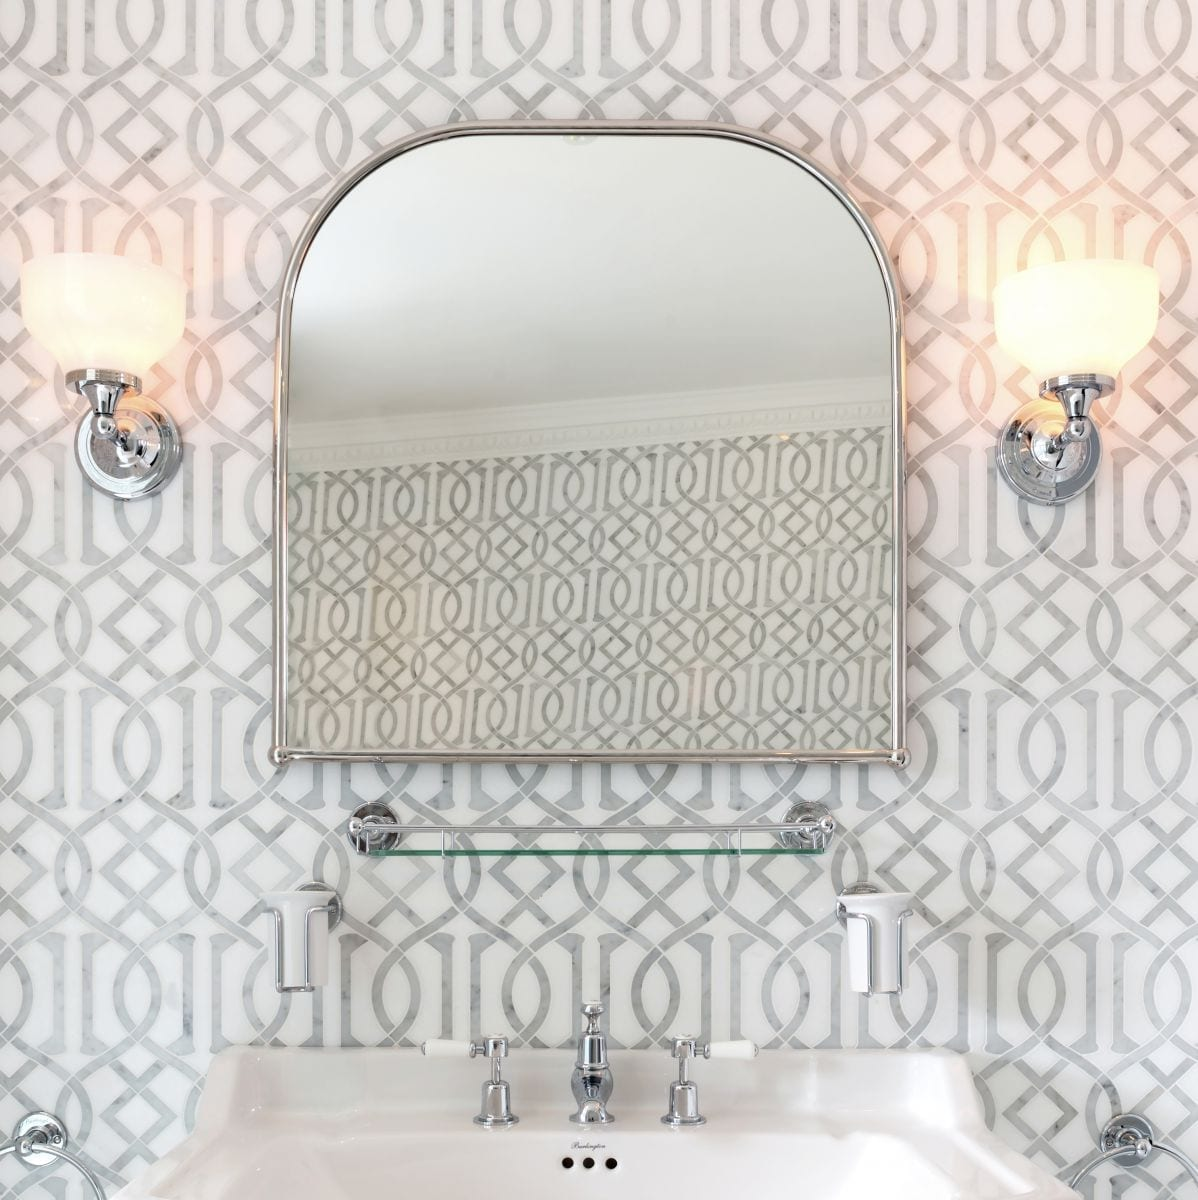 oval bathroom mirror with background of silver wallpaper and wall lights